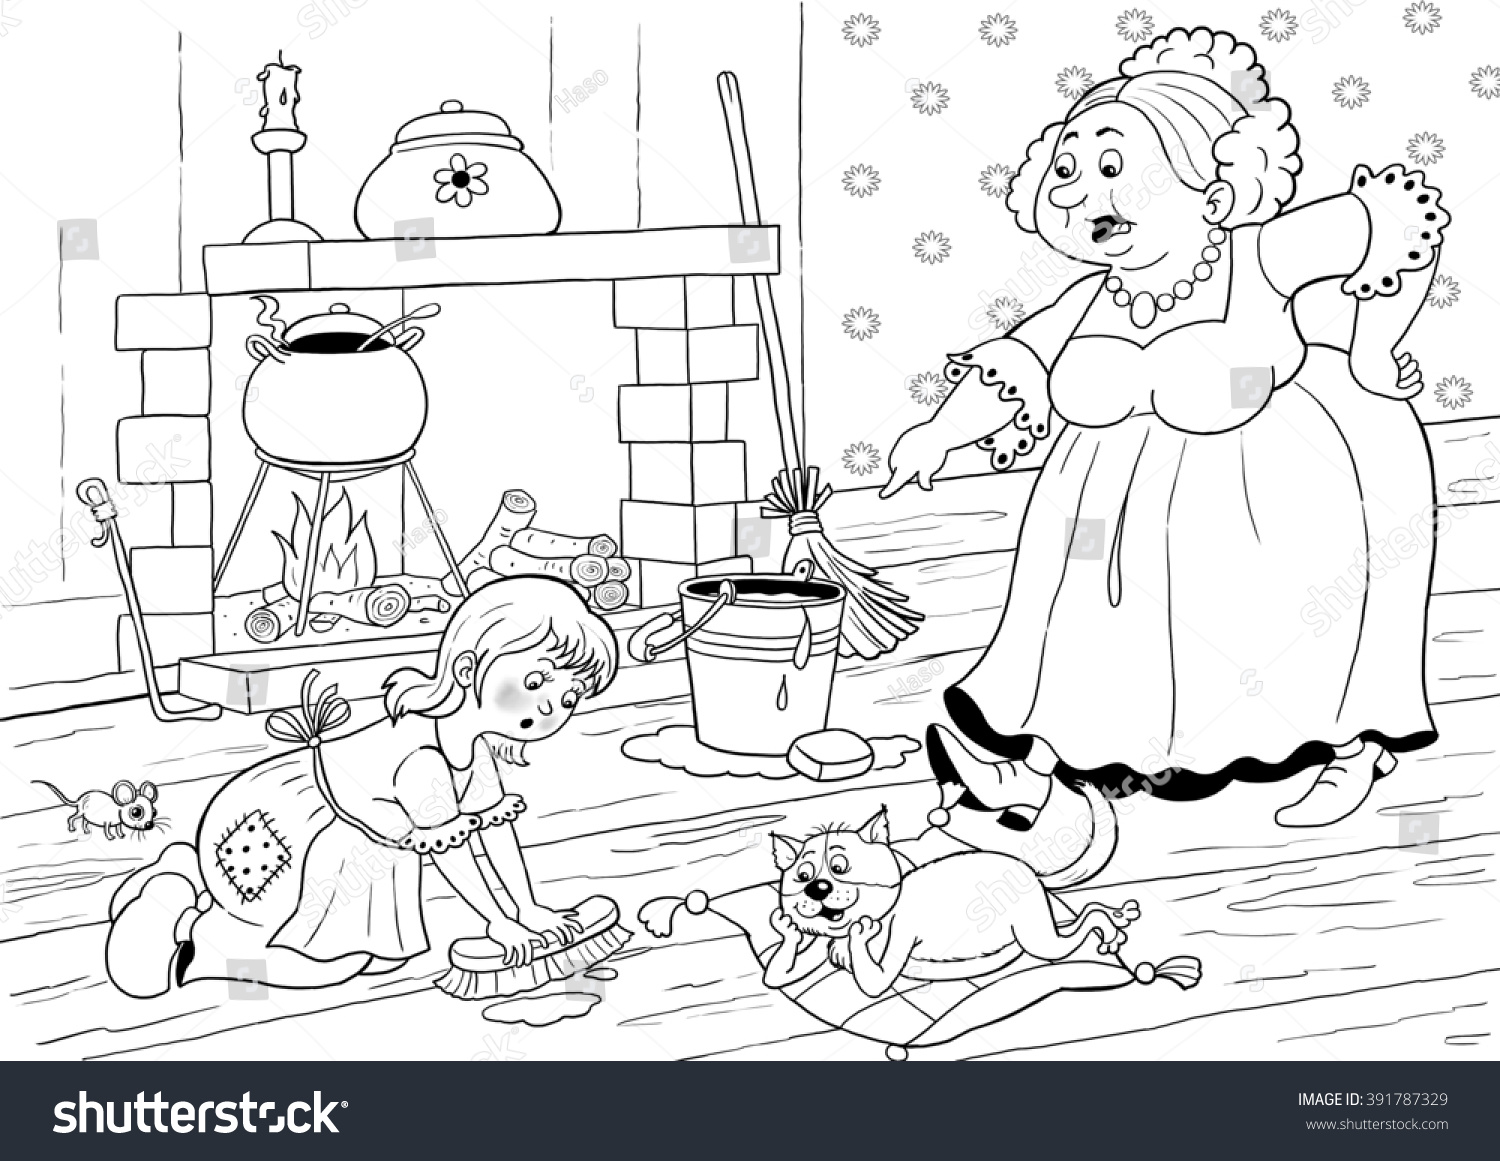 Fairy Tale Cinderella A Cute Little Girl And Her Angry Stepmother Illustration For